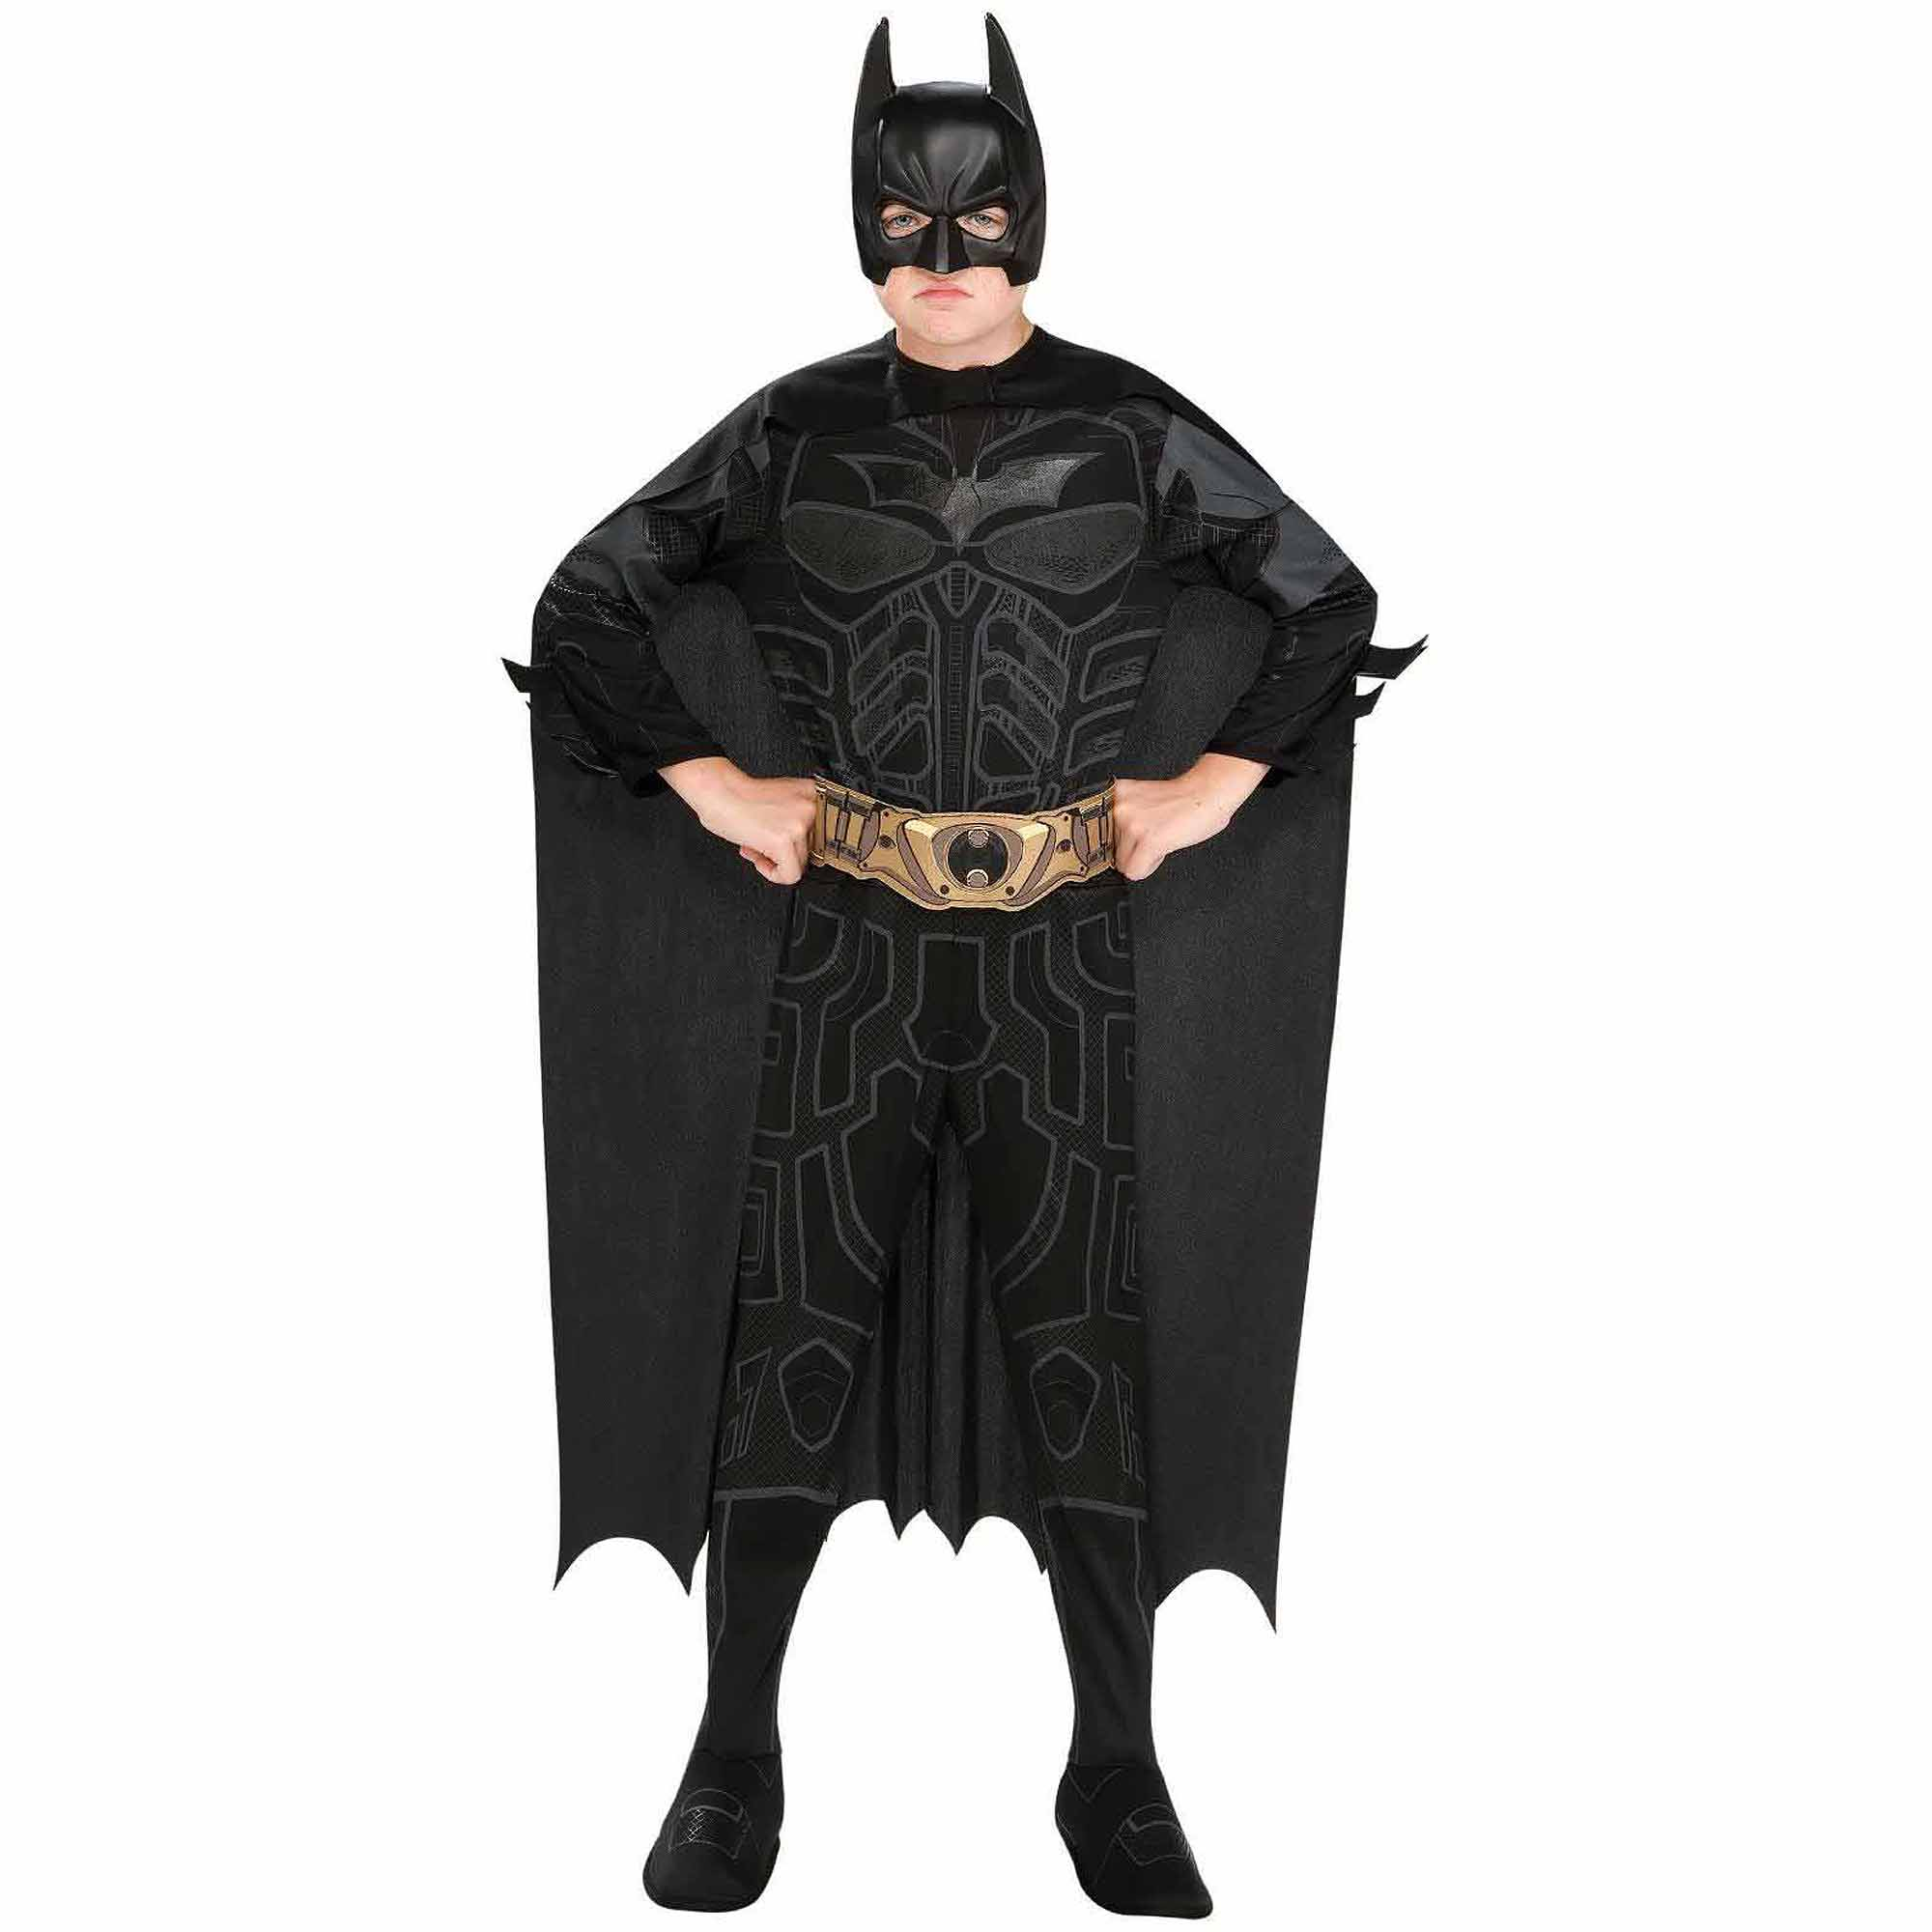 Batman The Dark Knight Rises Child Halloween Costume